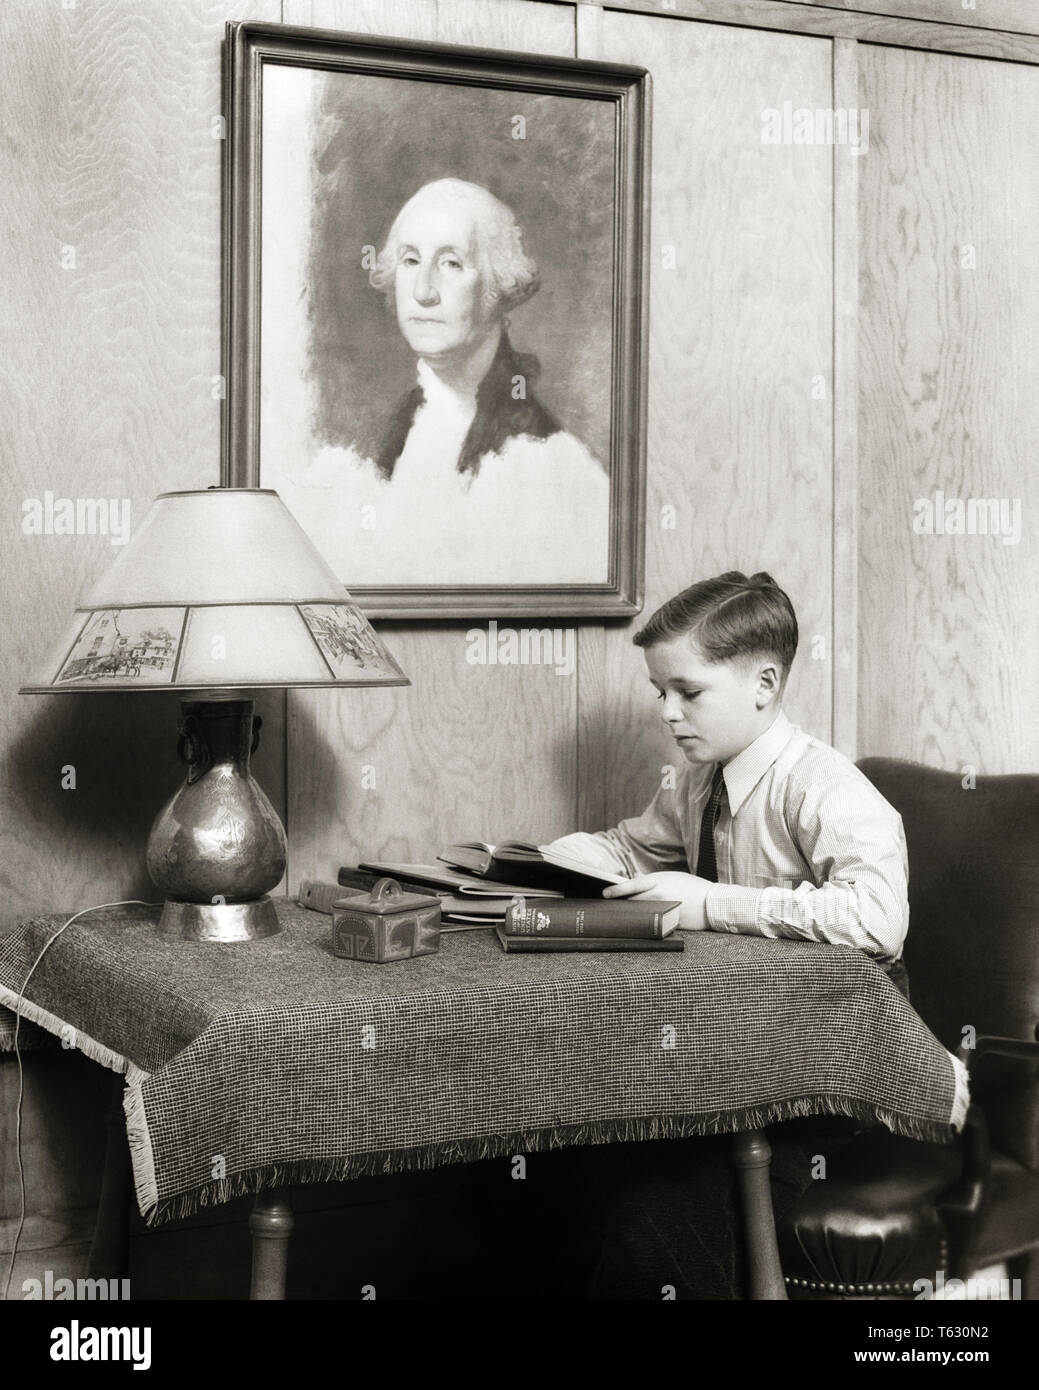 1930s STUDIOUS BOY DOING HOMEWORK SITTING READING AT TABLE UNDER PORTRAIT OF GEORGE WASHINGTON - s8901 HAR001 HARS JUVENILES STUDIOUS TABLE LAMP BLACK AND WHITE CAUCASIAN ETHNICITY HAR001 OLD FASHIONED - Stock Image